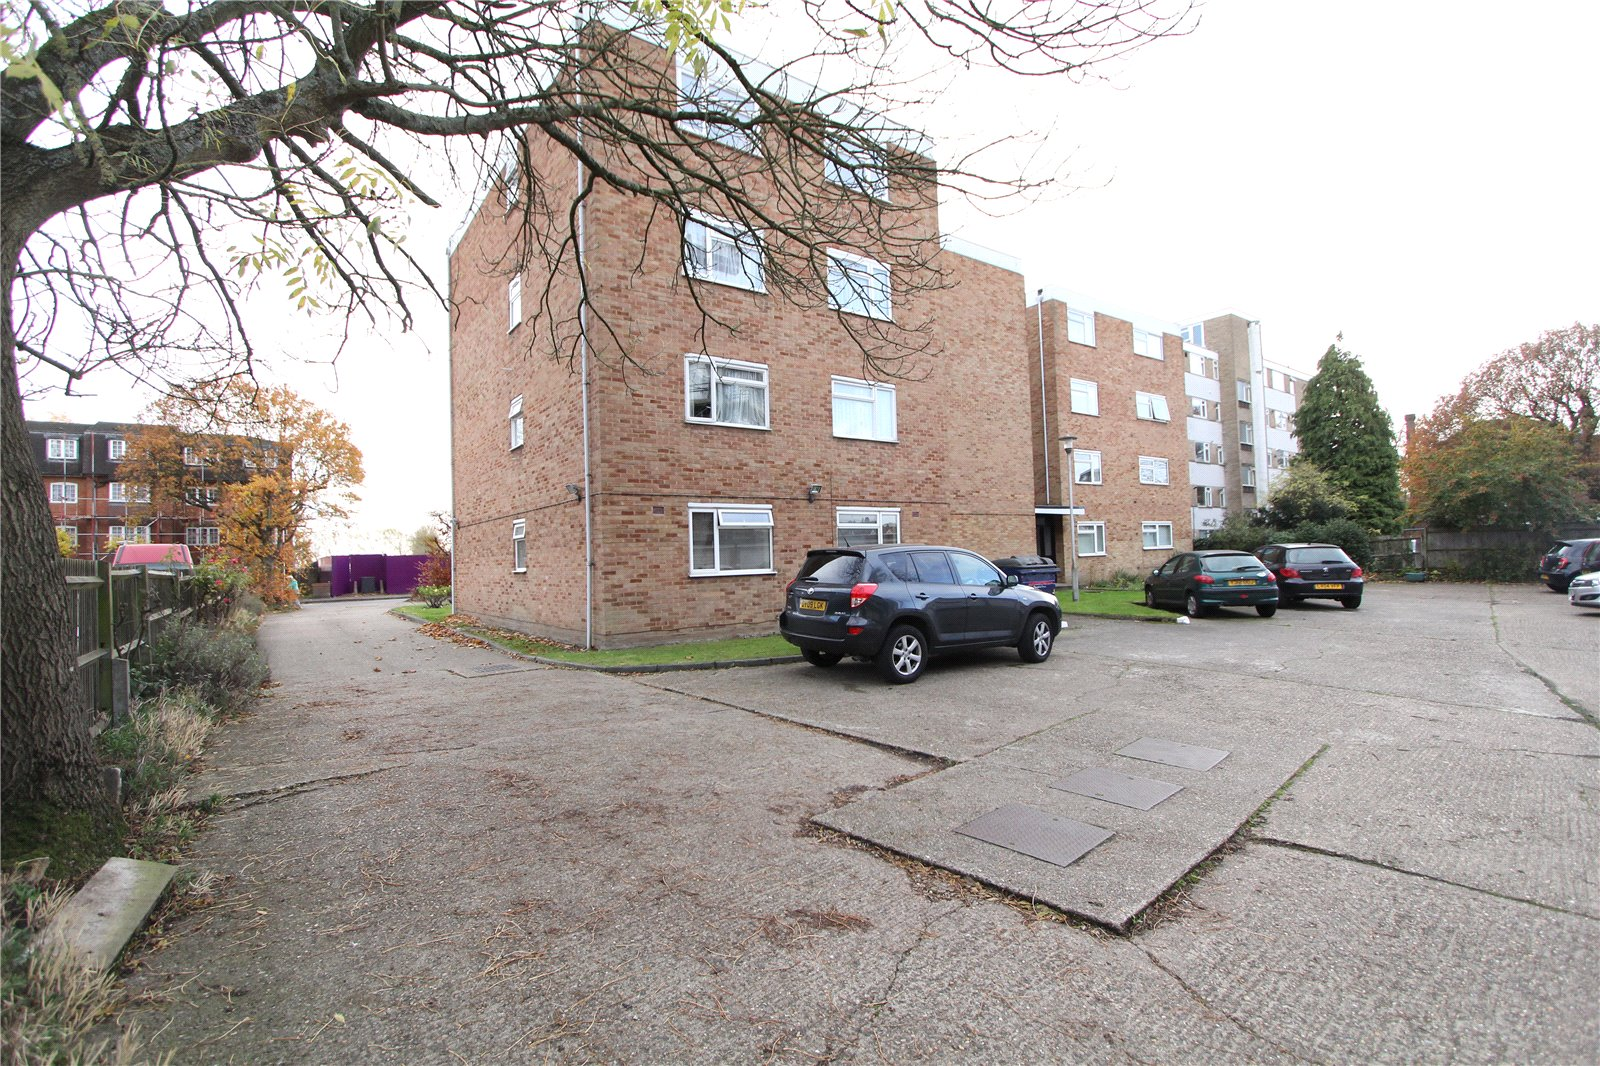 estate agents and letting agents in the uk houses  flats 3 bedroom house for rent in harrow on the hill